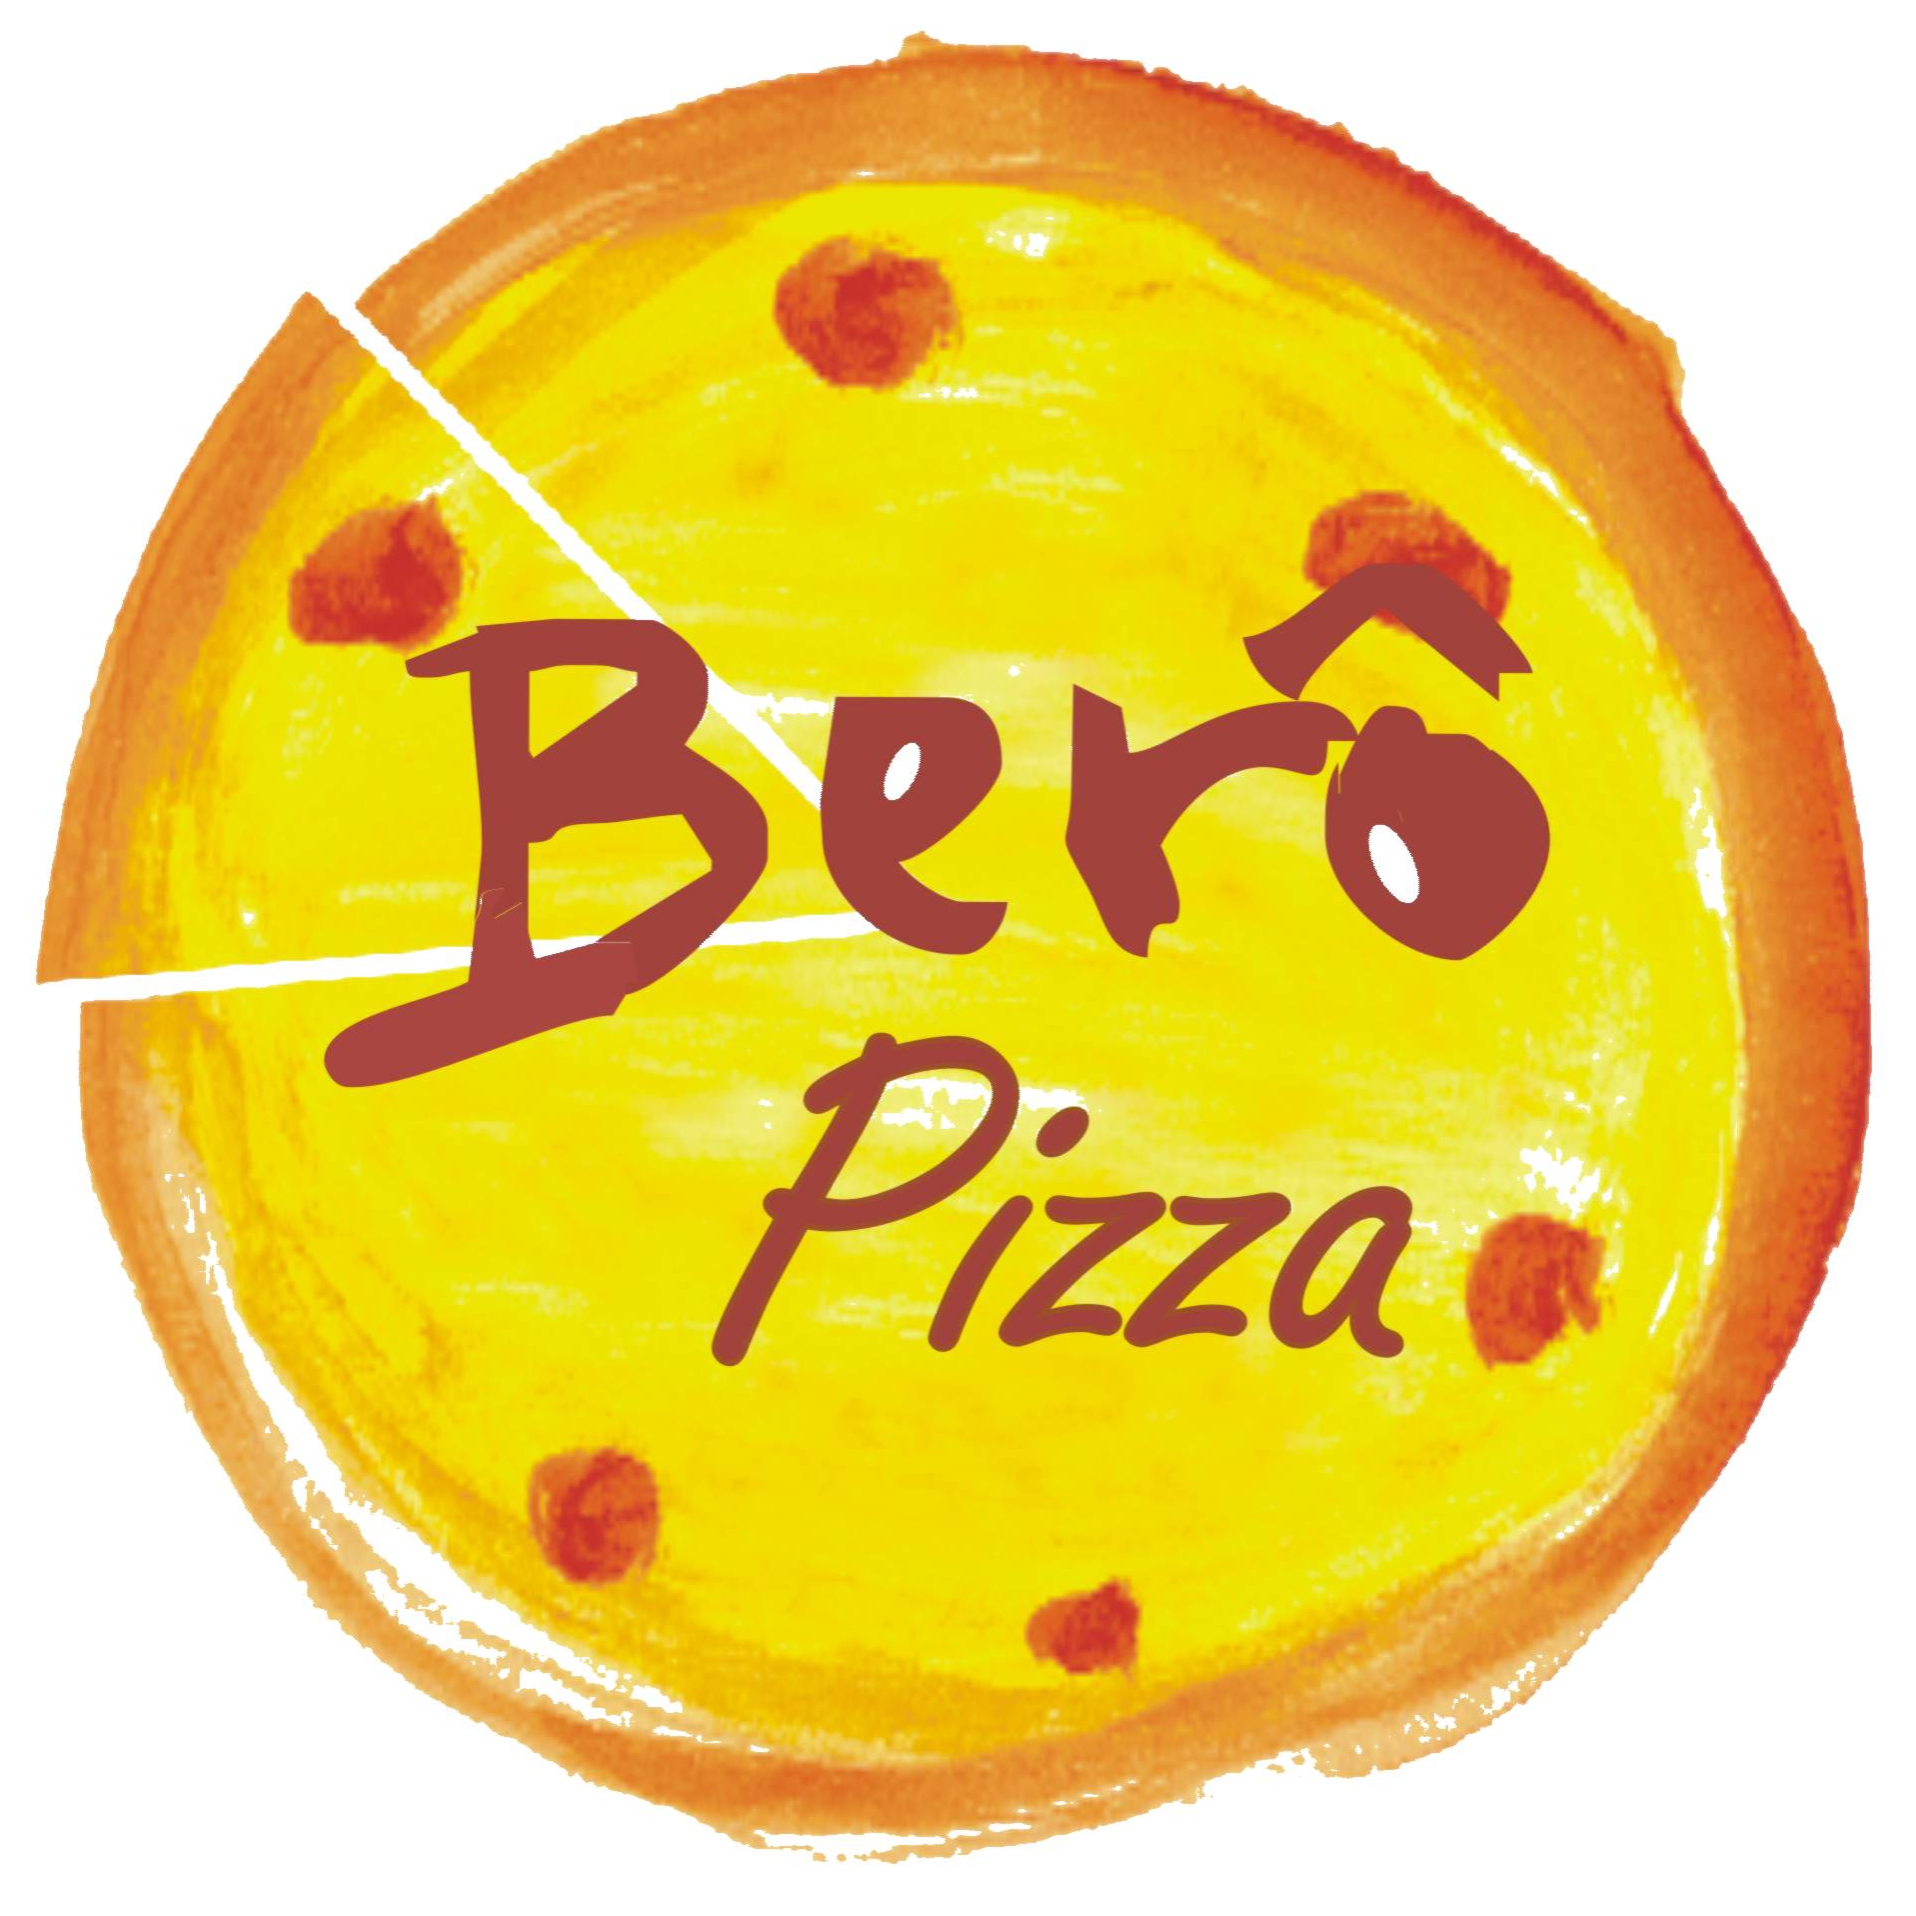 Berô Pizza (kasher)